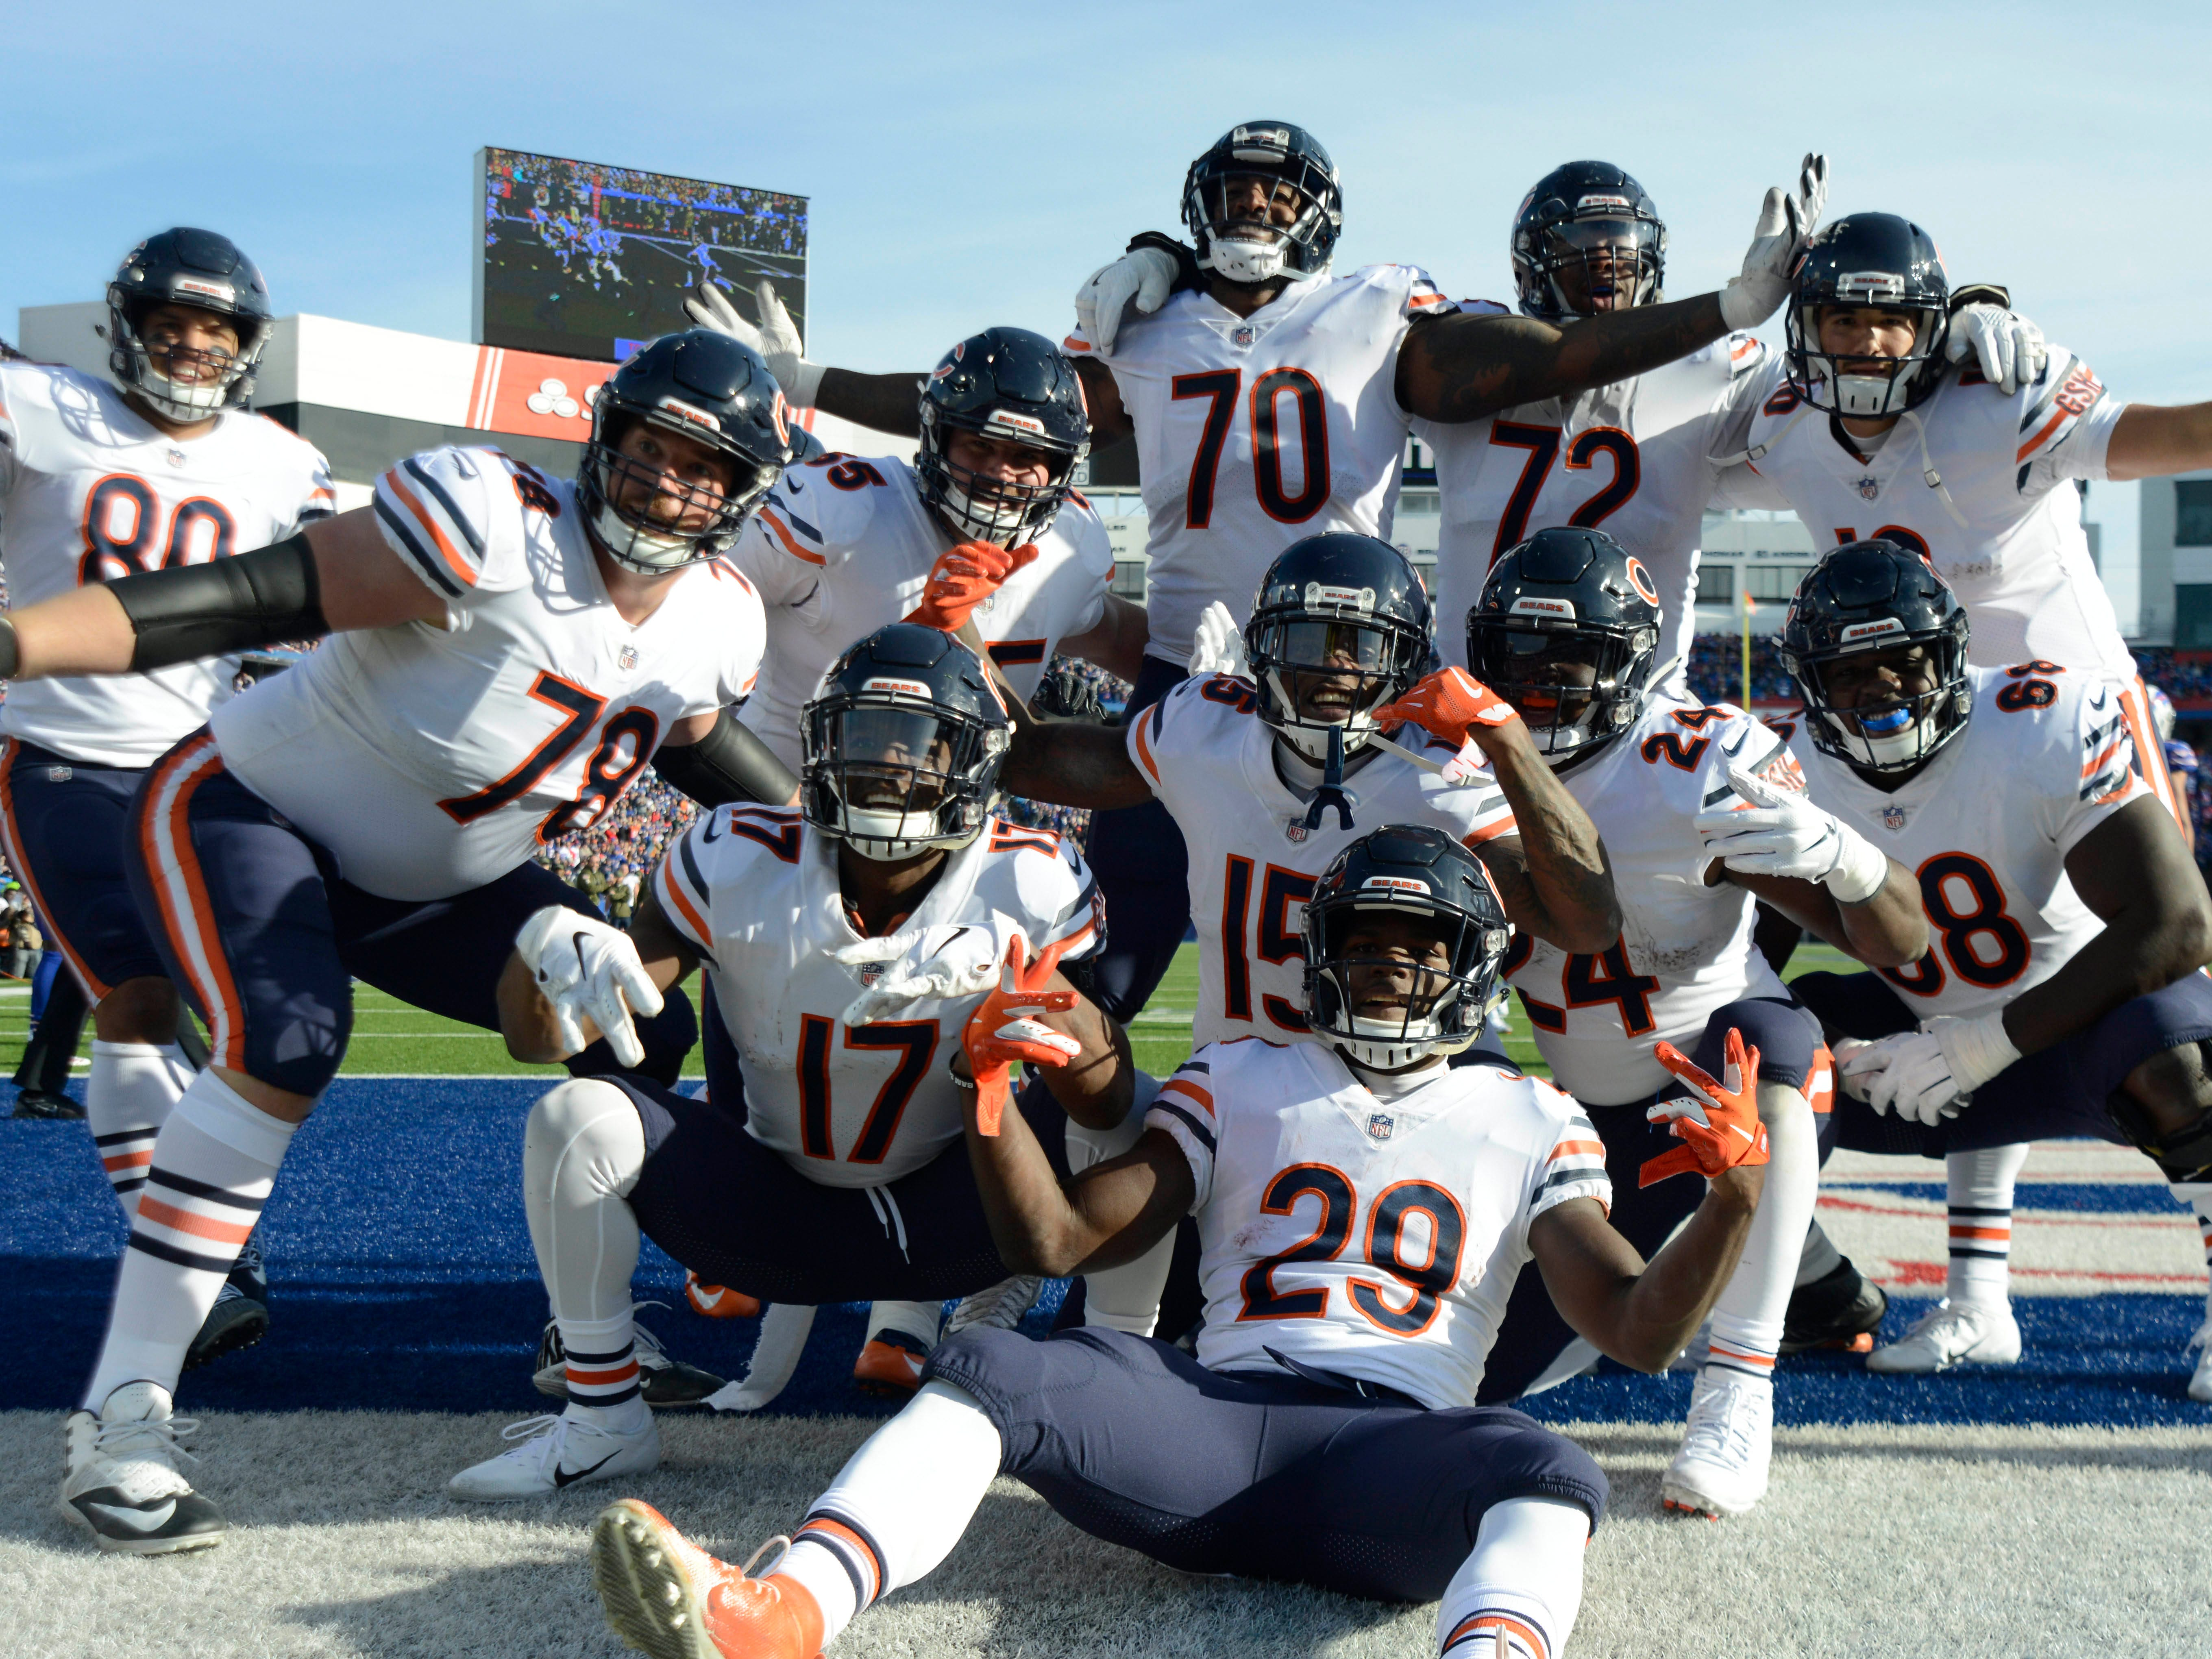 10. Bears (5-3) | Last game: Defeated the Bills, 41-9 | Previous ranking: 10